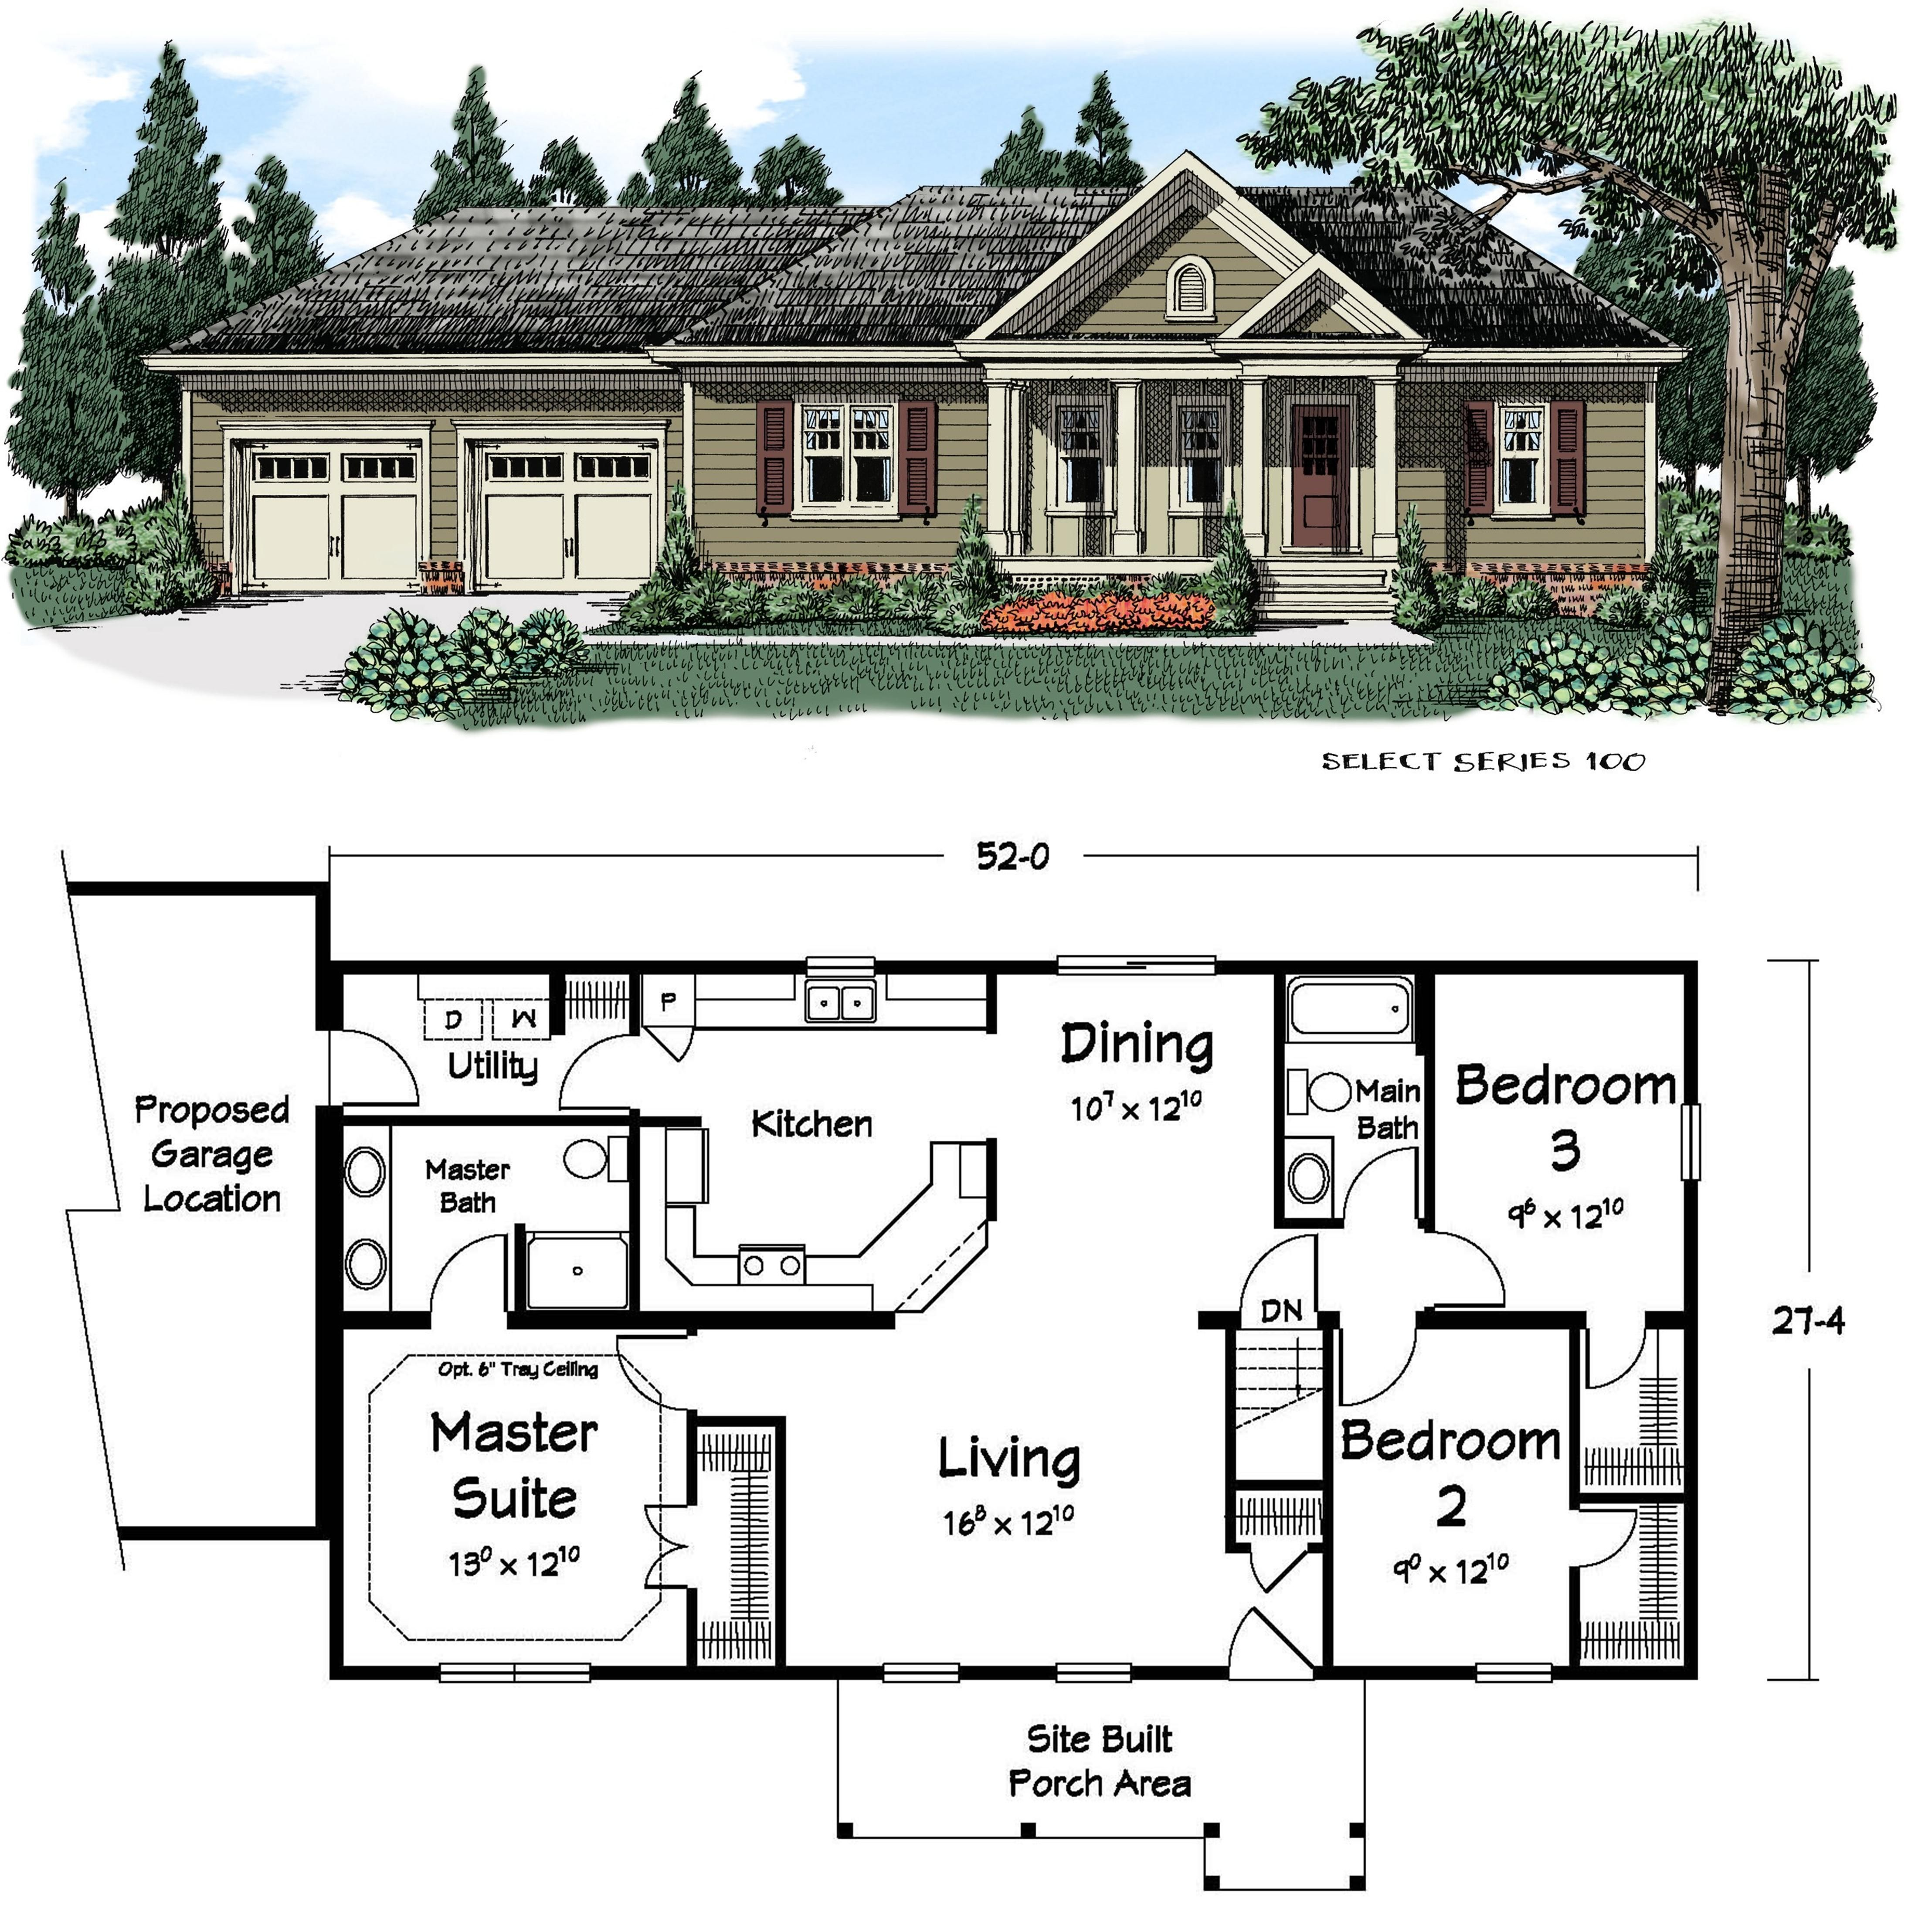 Northwood Modular Homes Custom Modular Homes Cass City Mi Ranch Style House Plans New House Plans Ranch House Remodel